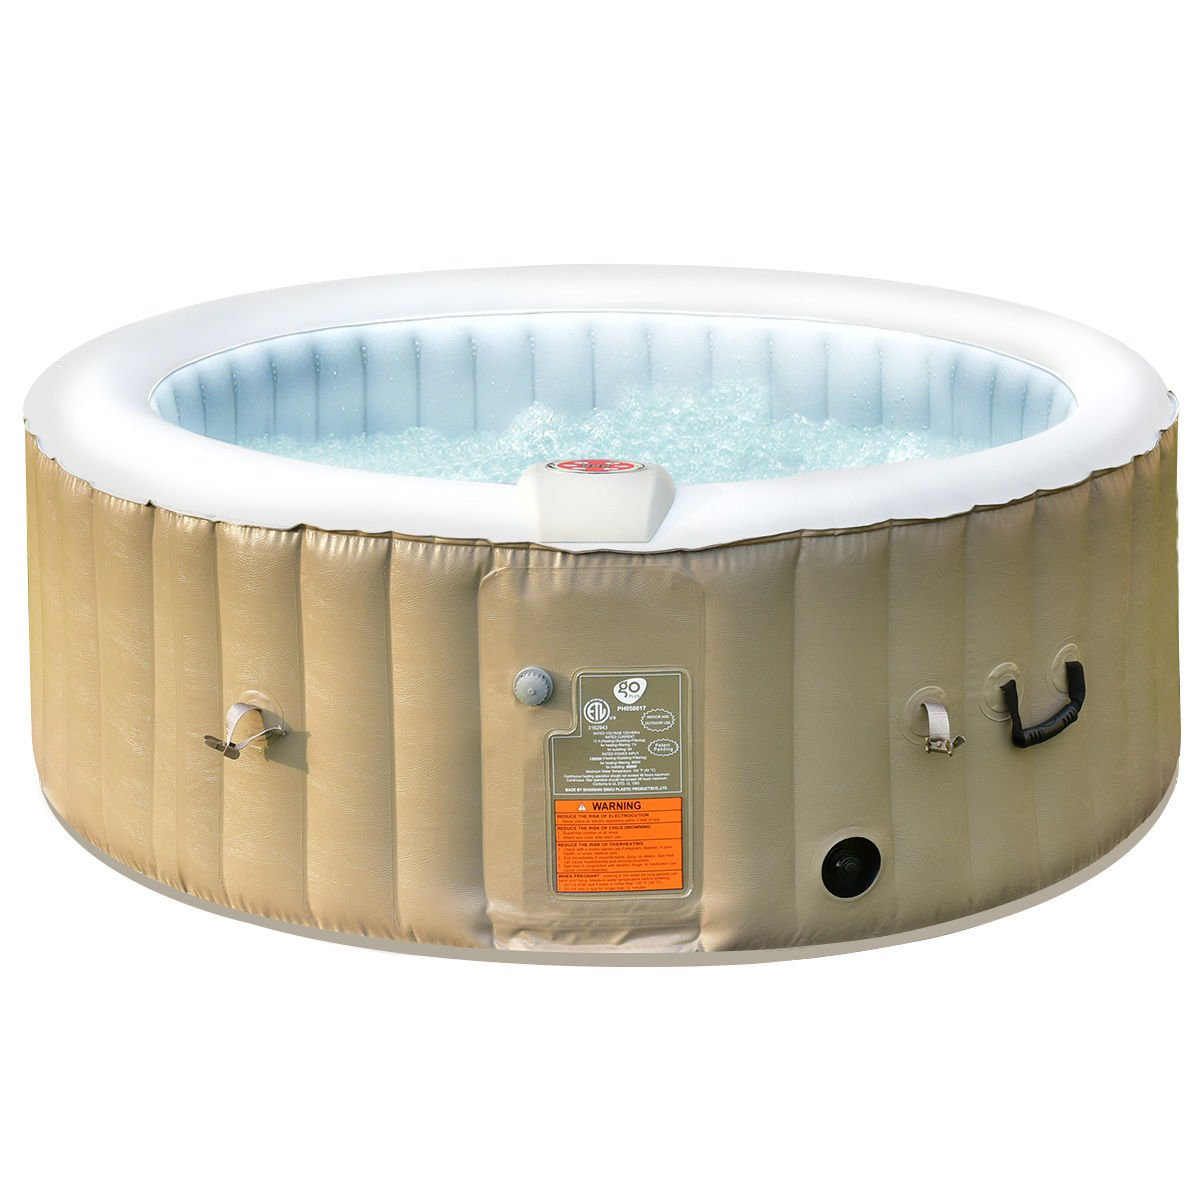 The Best Outdoor Hot Tubs For Your Garden: Reviews & Buying Guide 14